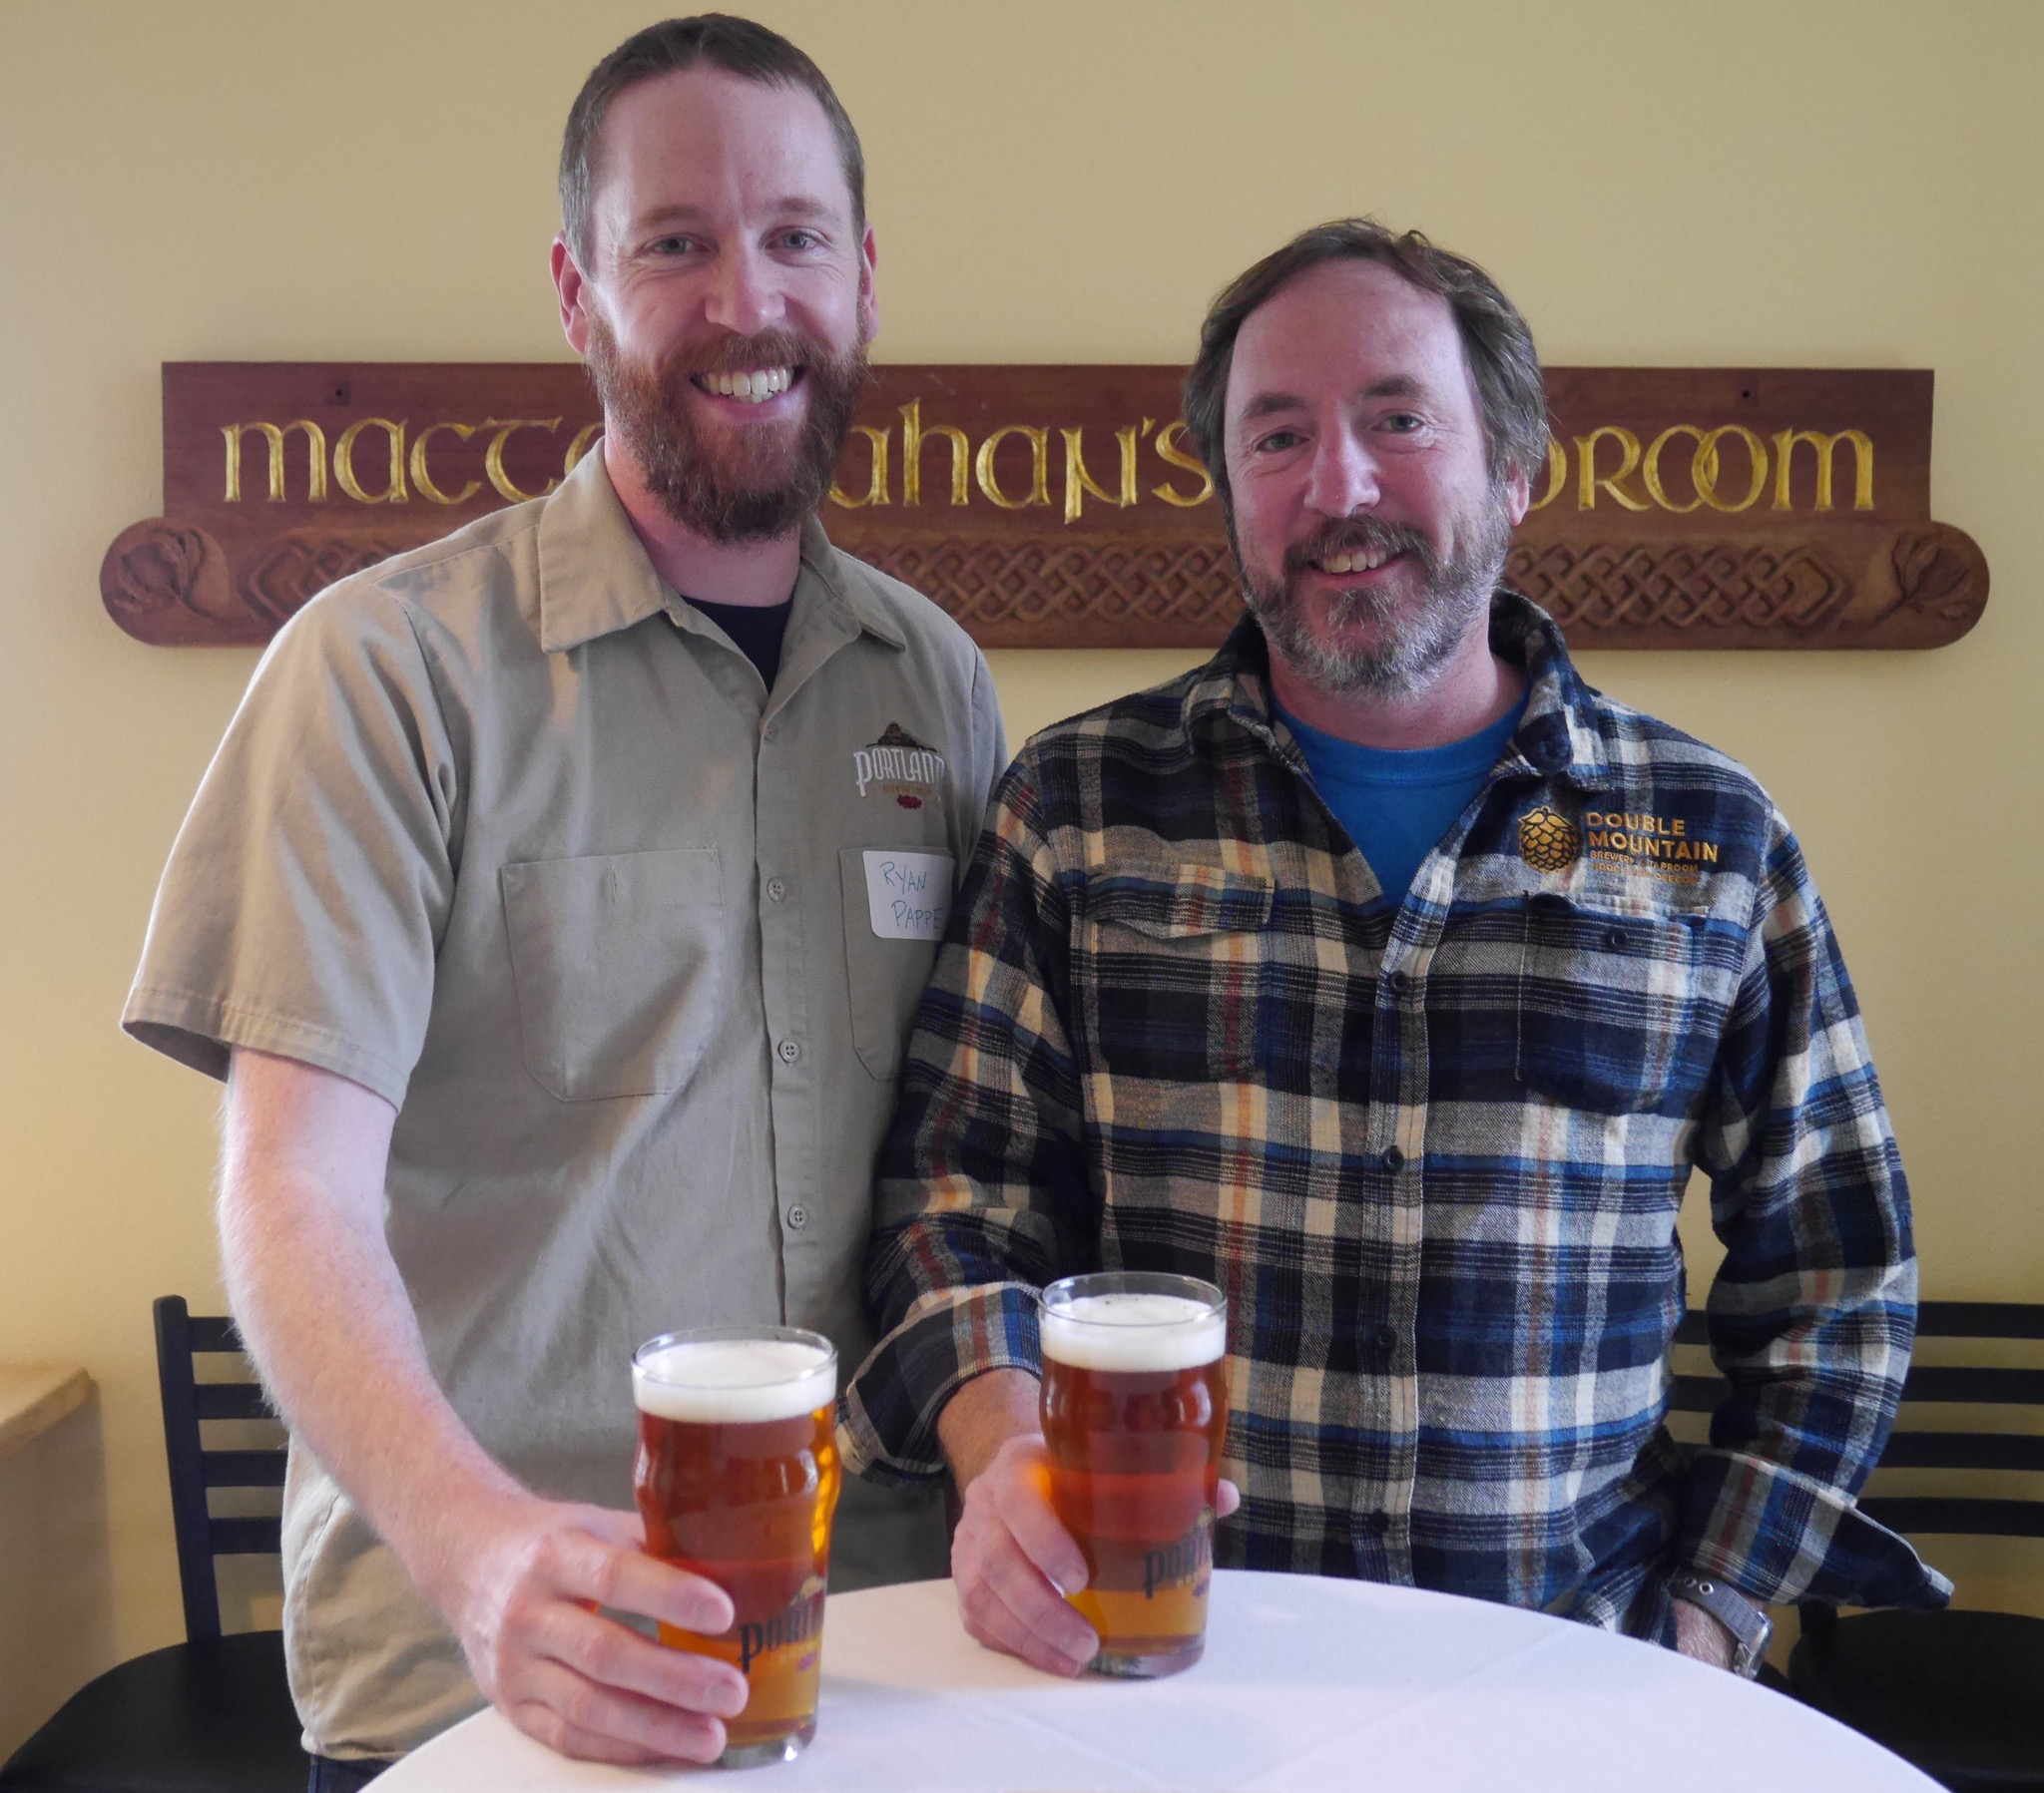 Portland Brewing's Ryan Pappe and Double Mountain's Matt Swihart enjoying a Subcontinental IPA during the PDX Beer Week media preview. (photo by Cat Stelzer)